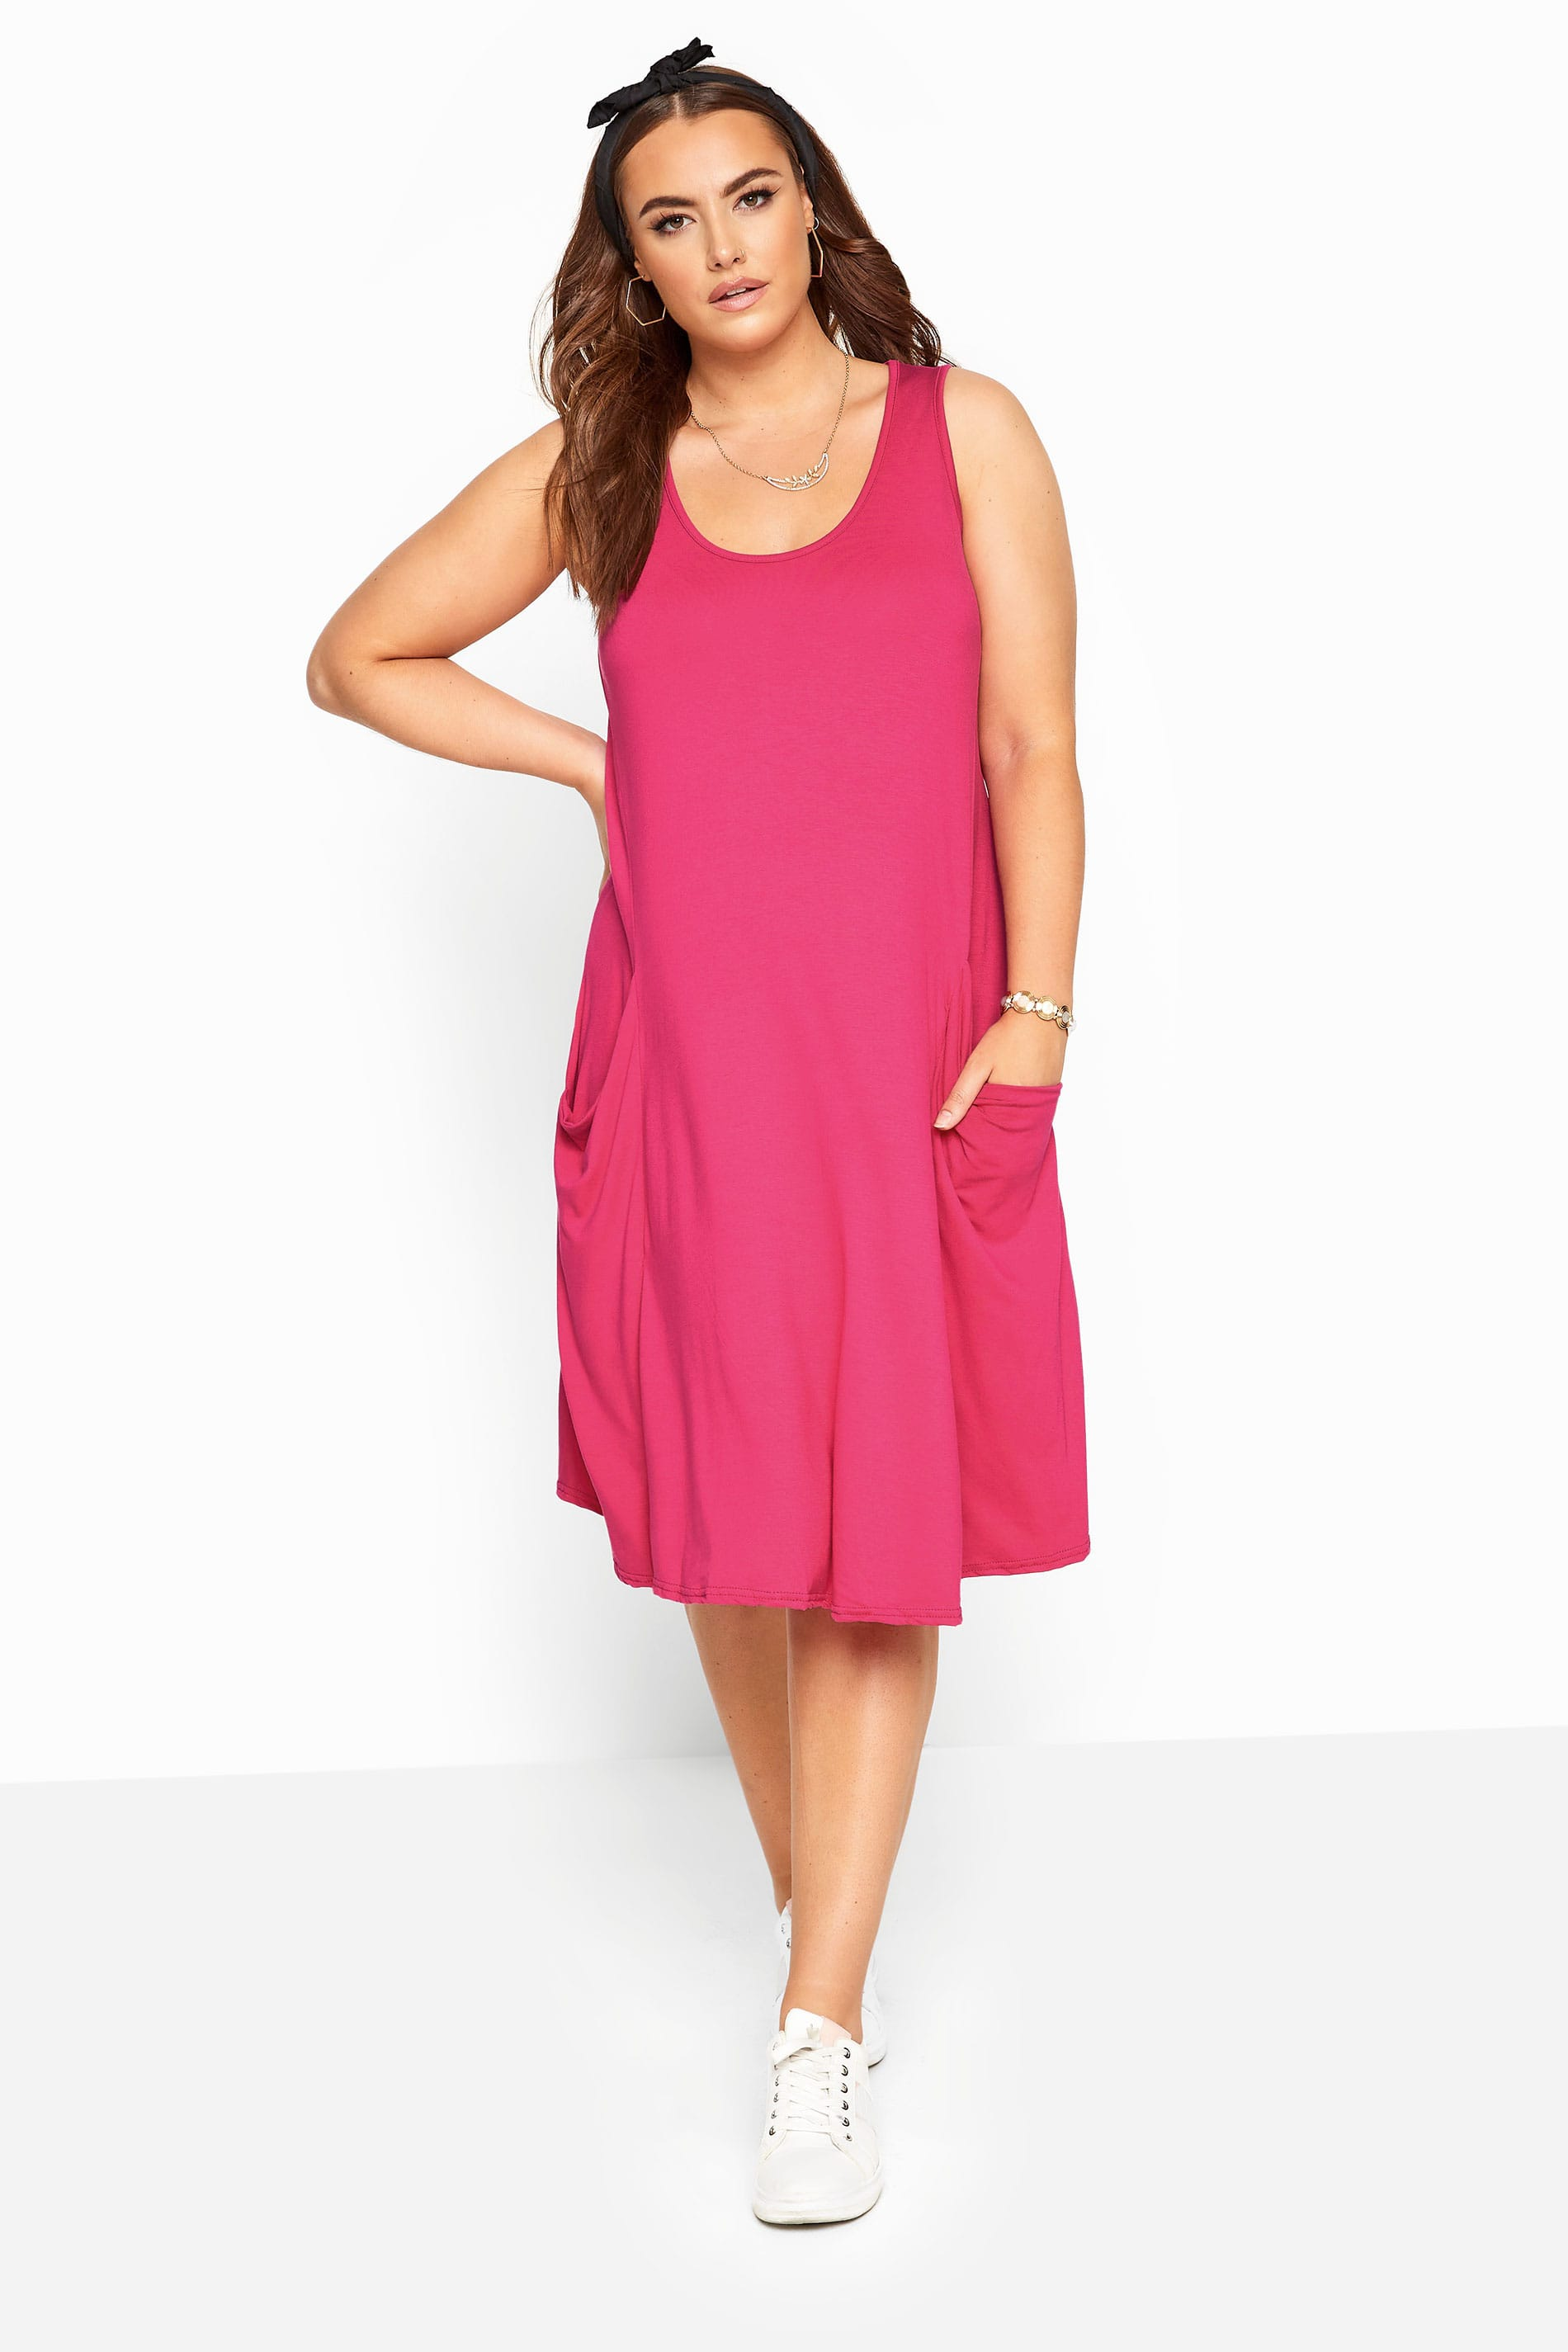 Fuchsia Pink Sleeveless Drape Pocket Dress